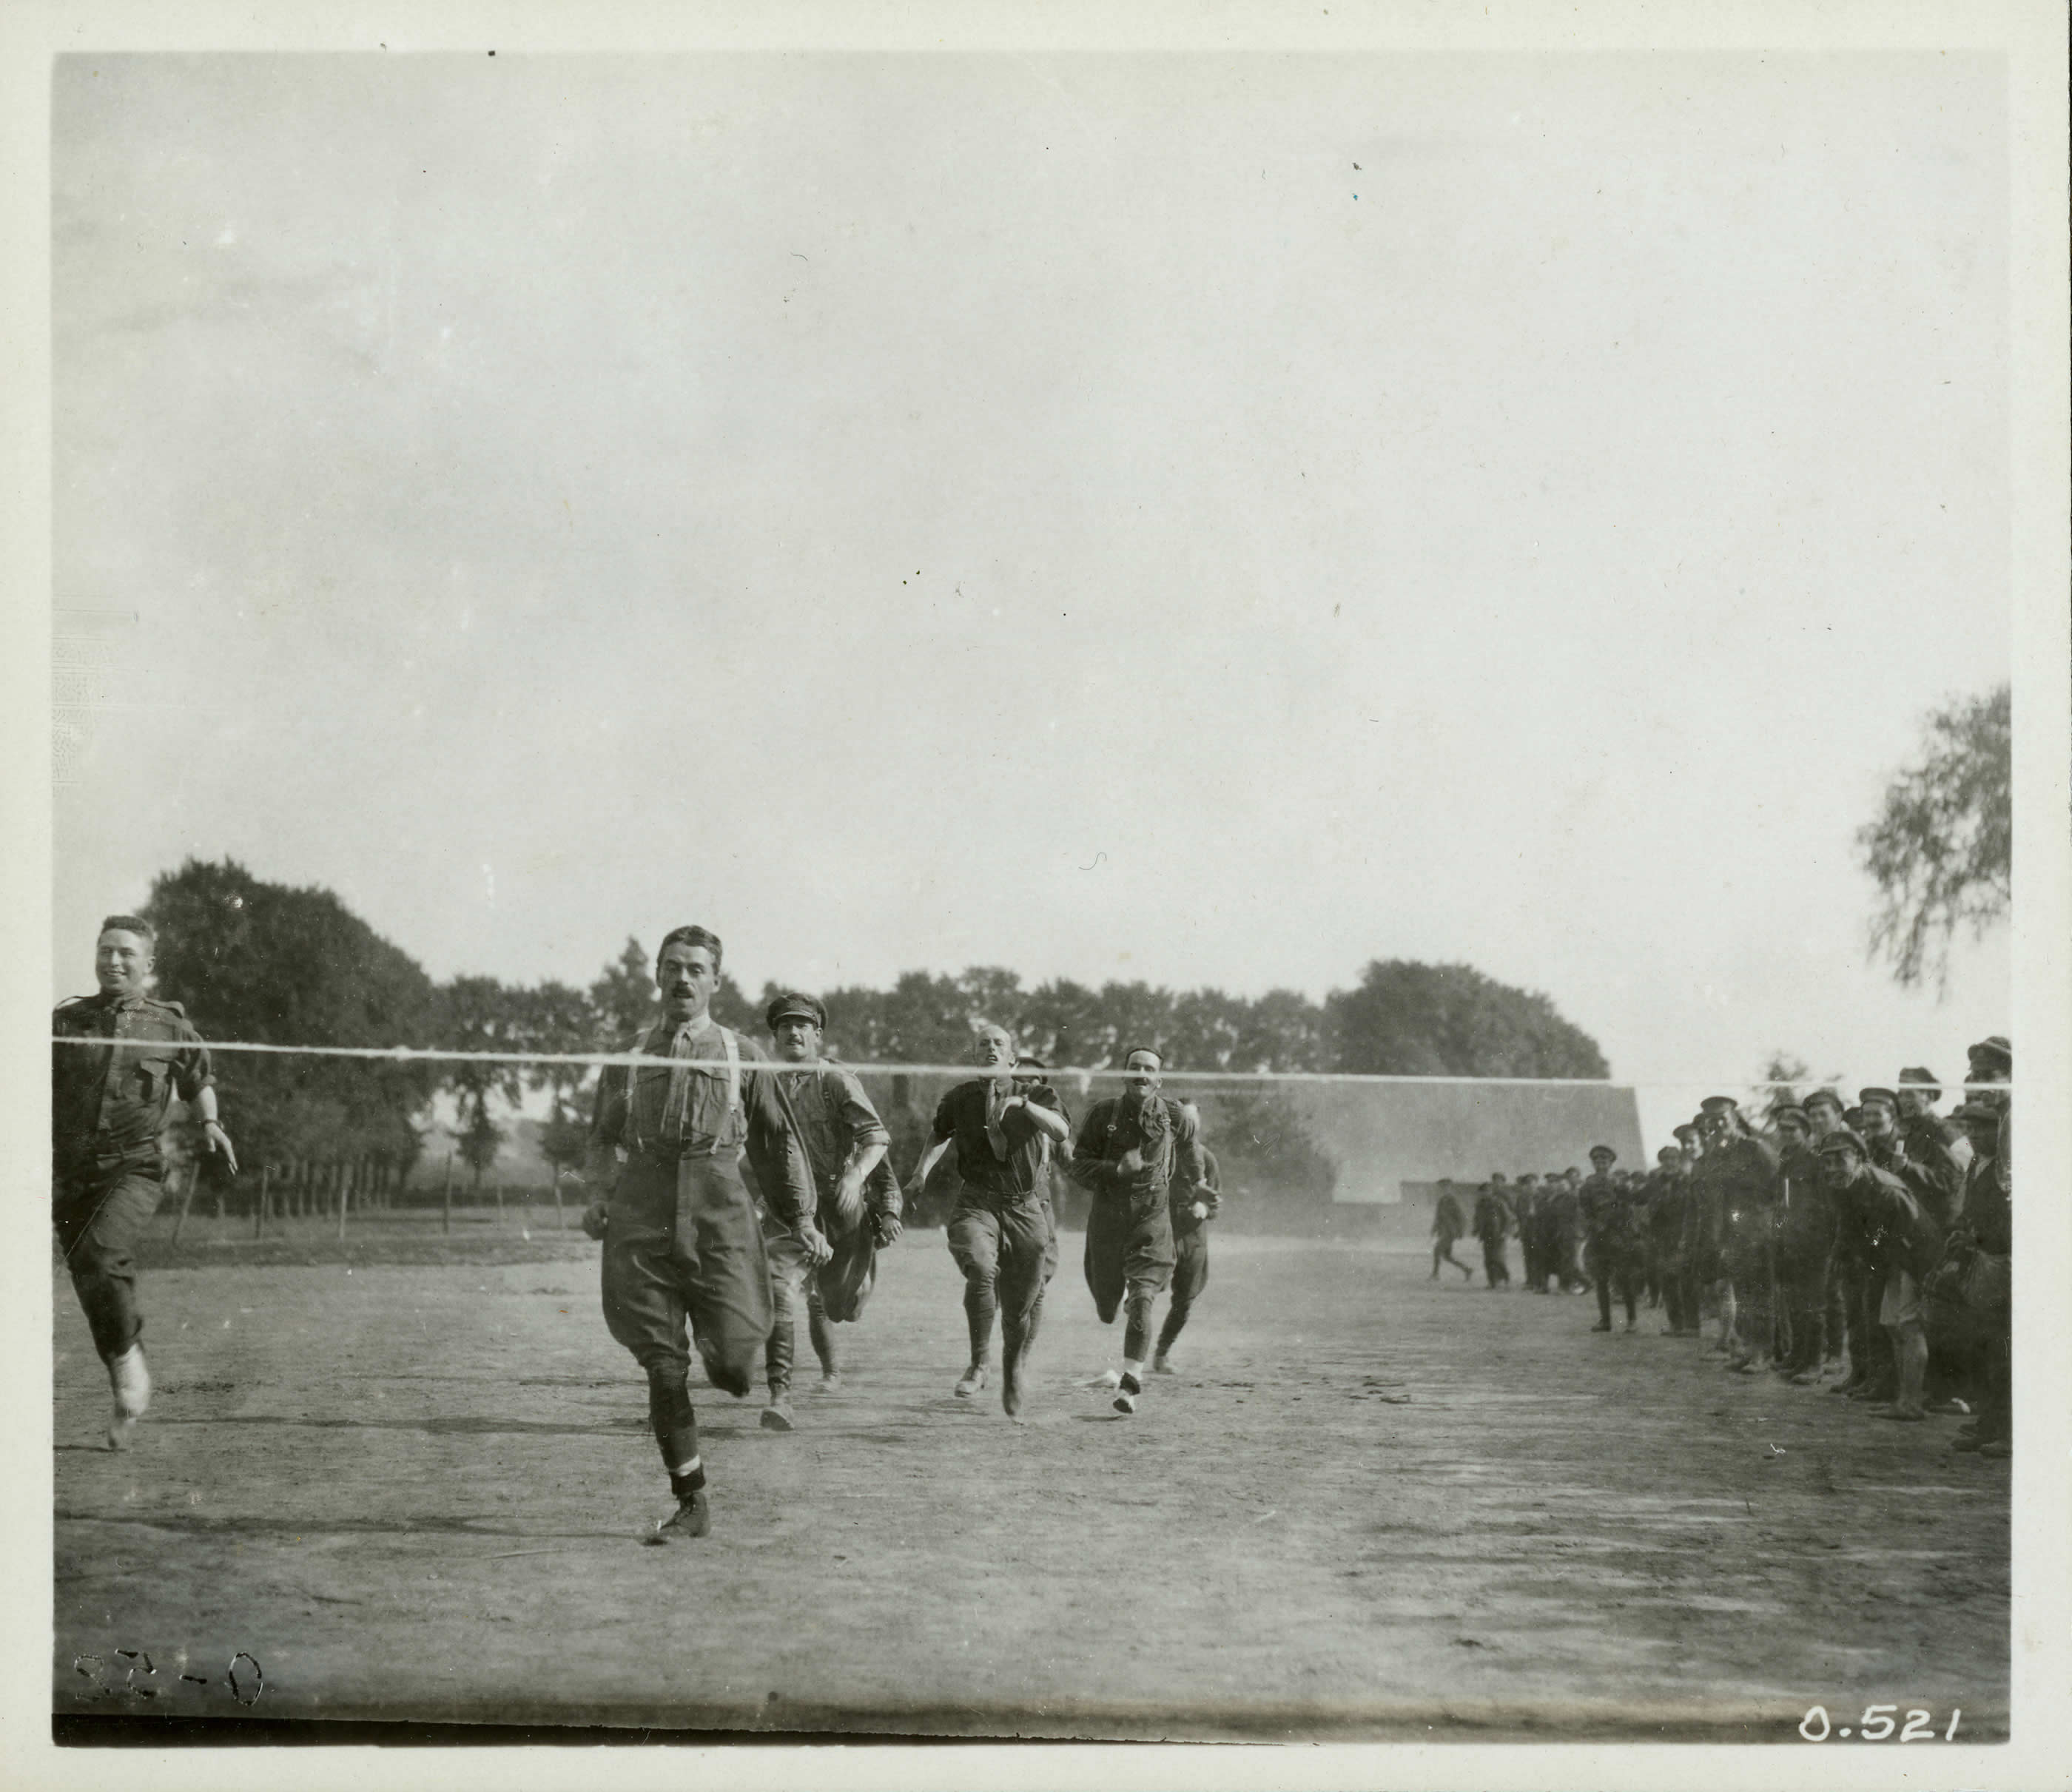 Officers' Race